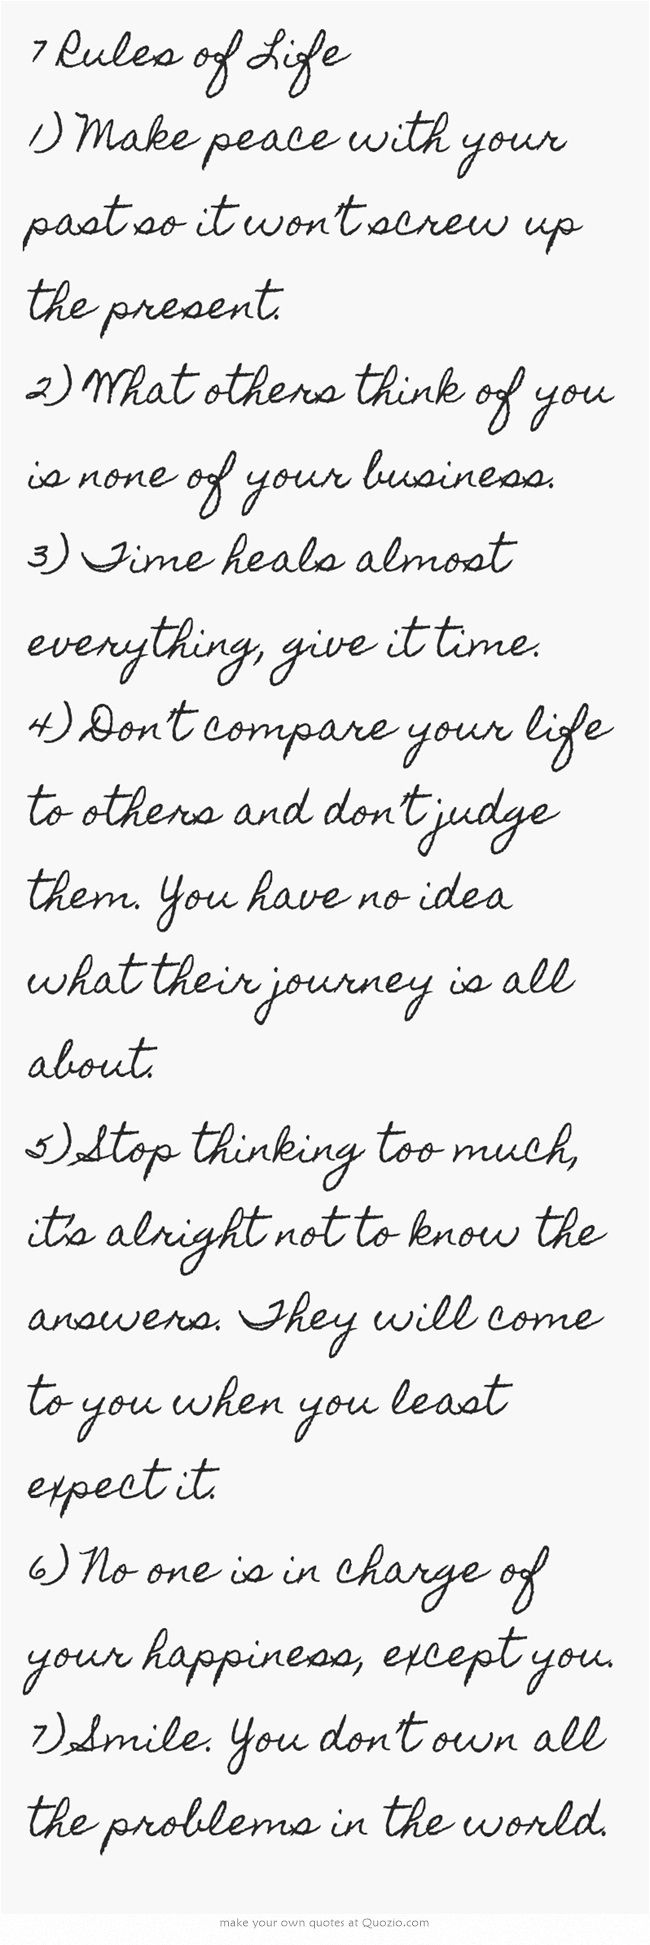 7 Rules of Life! Love this List! 1) Make peace with your past so it won't screw up the present. 2) What others think of you is none of your business. 3) Time heals almost everything, give it time. 4) Don't compare your life to others and don't judge them. You have no idea what their journey is all about. 5) Stop thinking too much, it's alright not to know the answers. They will come to you when you least expect it. 6) No one is in charge of your happiness, except you. 7) Smile…